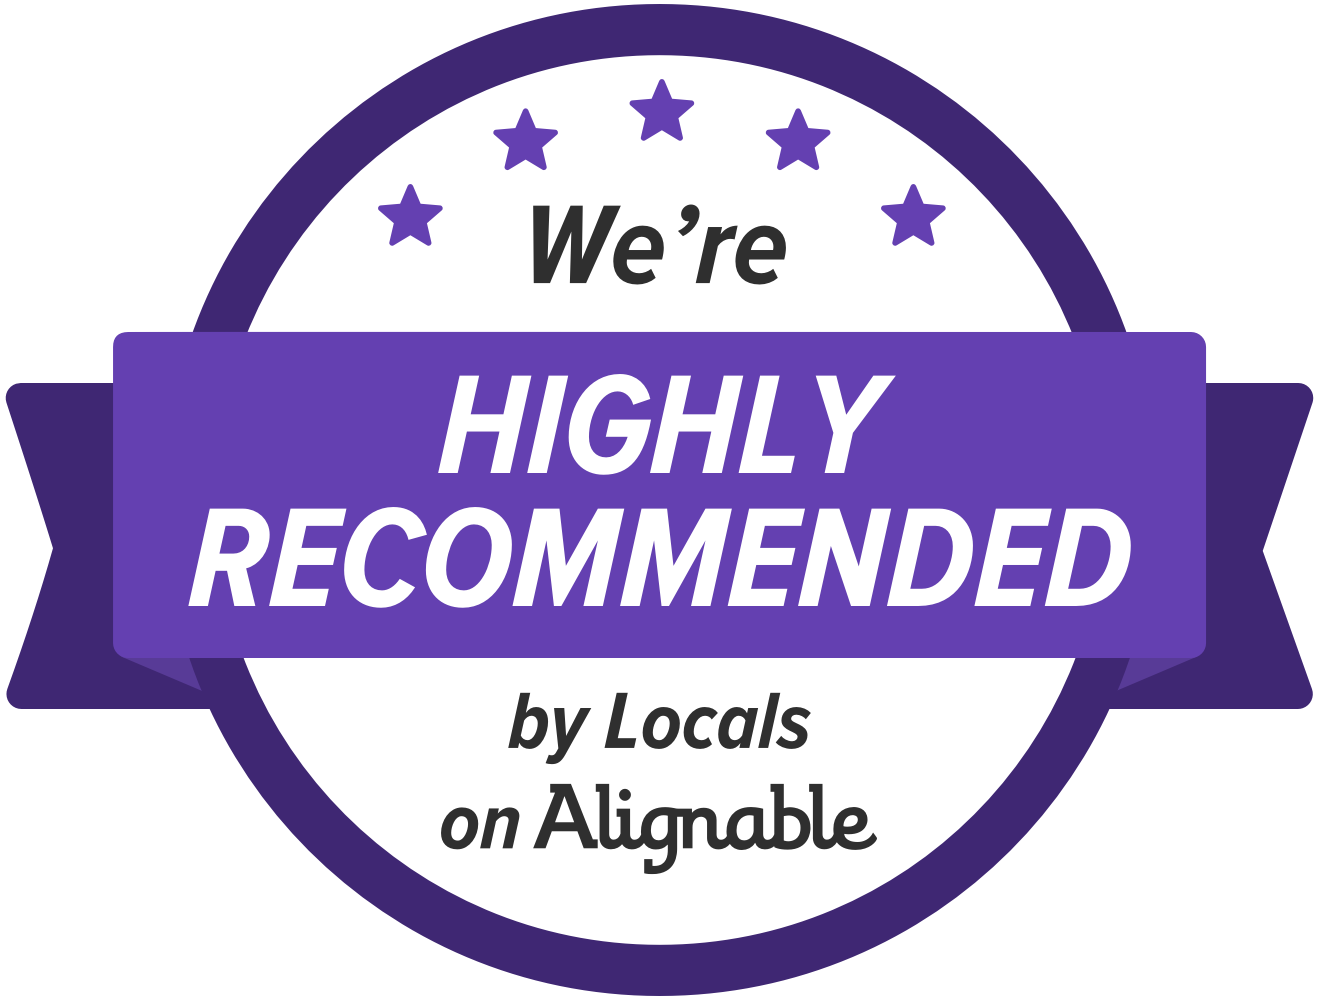 We're highly reccomended by locals on Alignable!